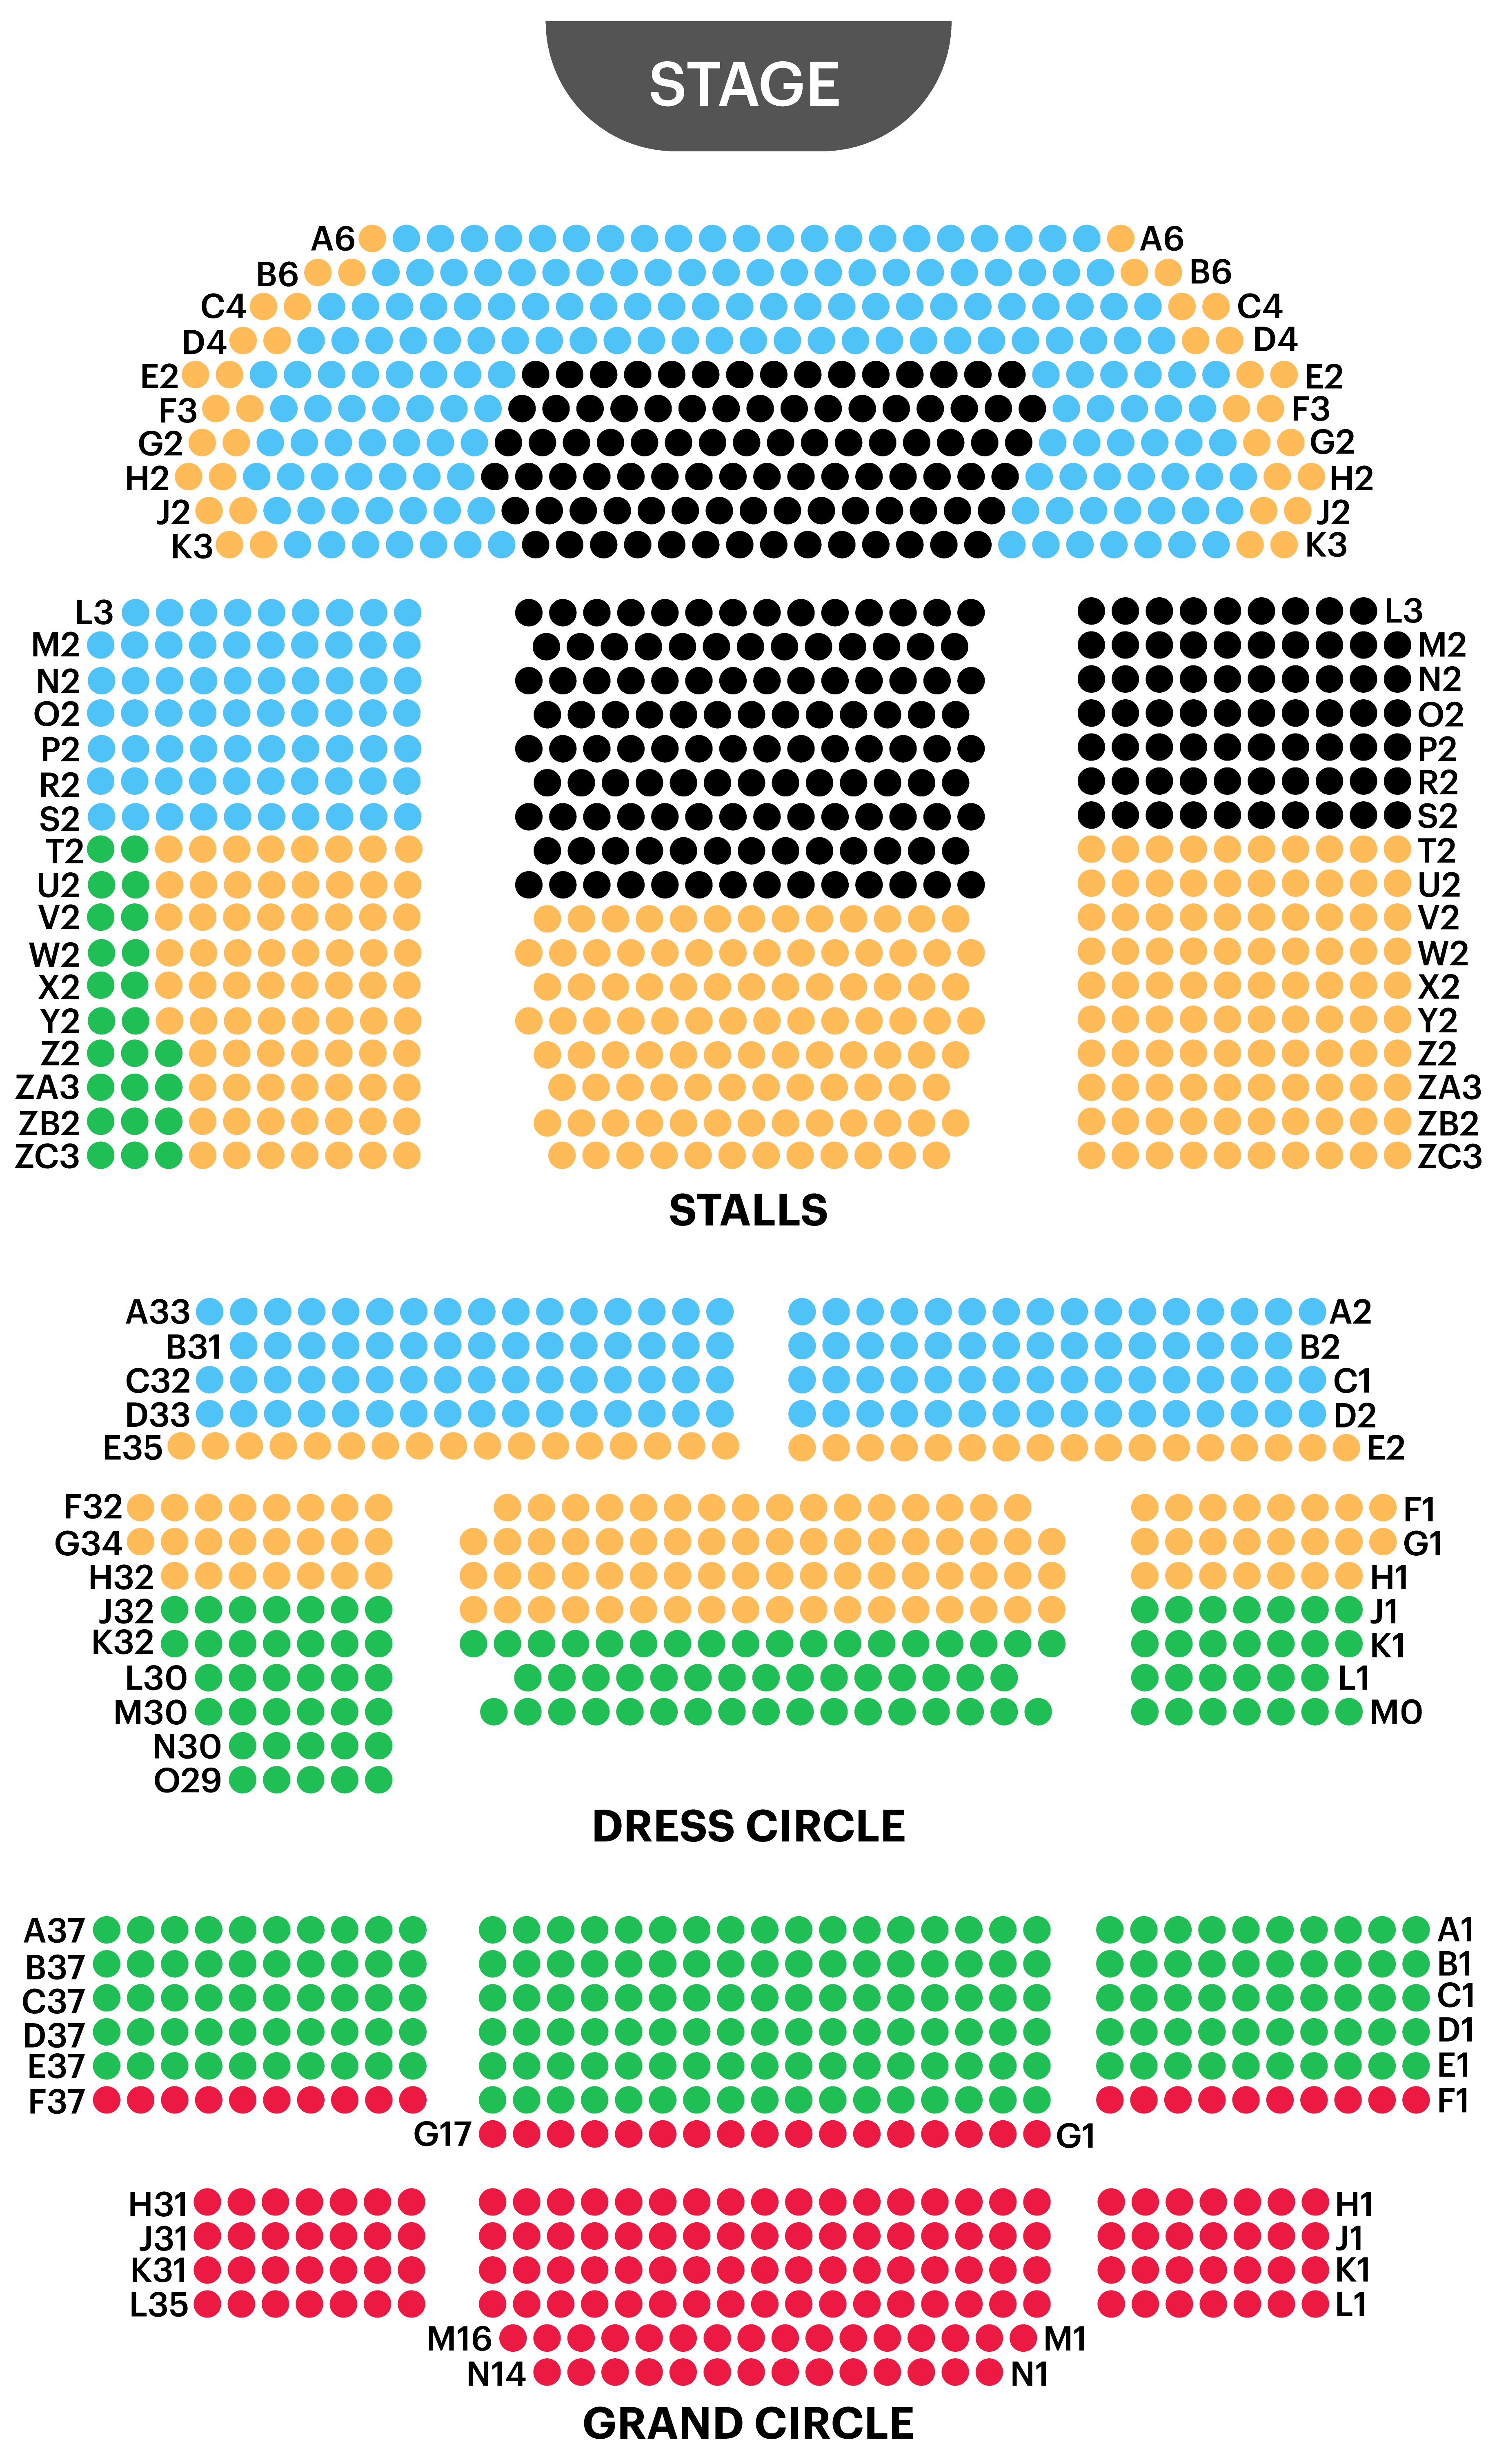 Prince Edward Theatre Seating Map